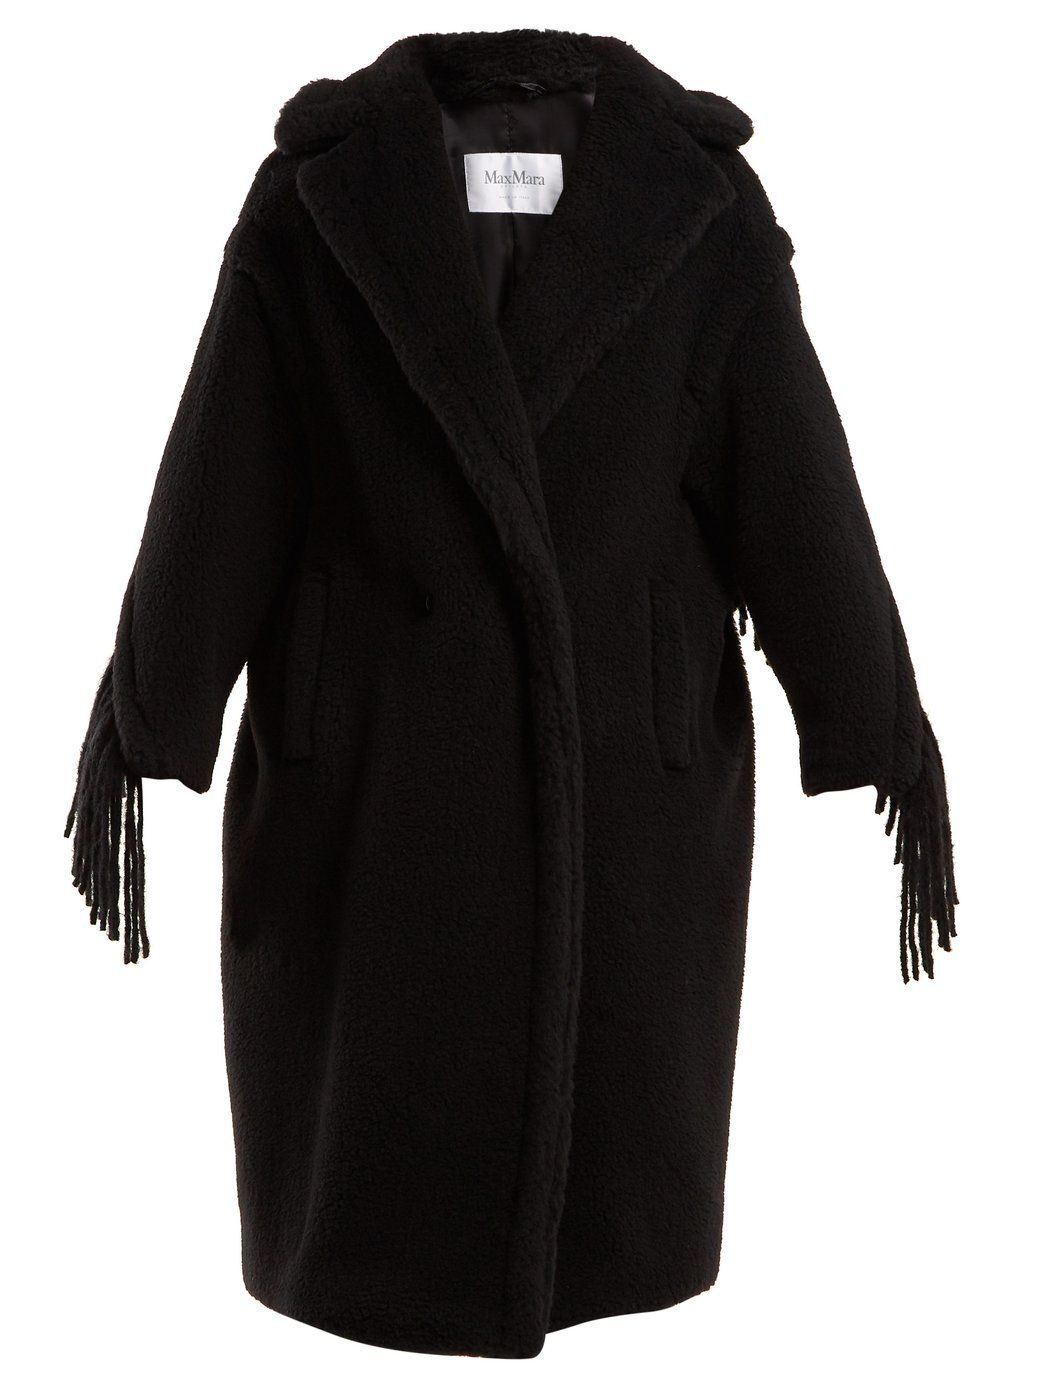 shop-max-mara-london-black-wool-blend-coat